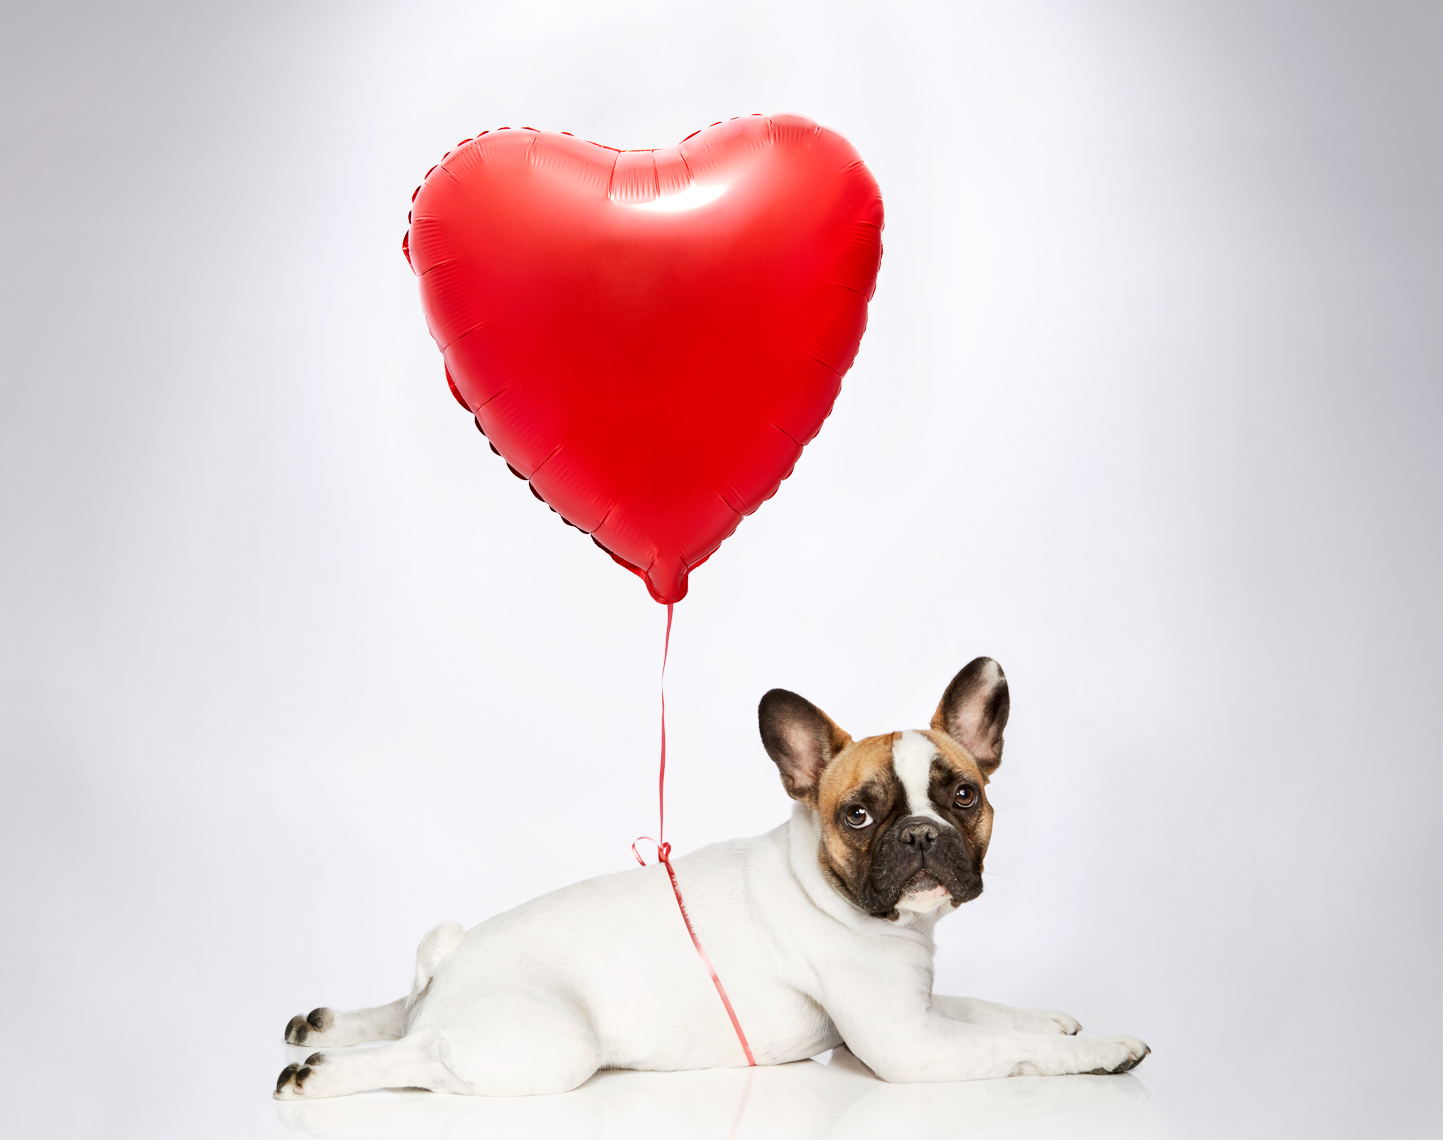 French bulldog with a red heart balloon